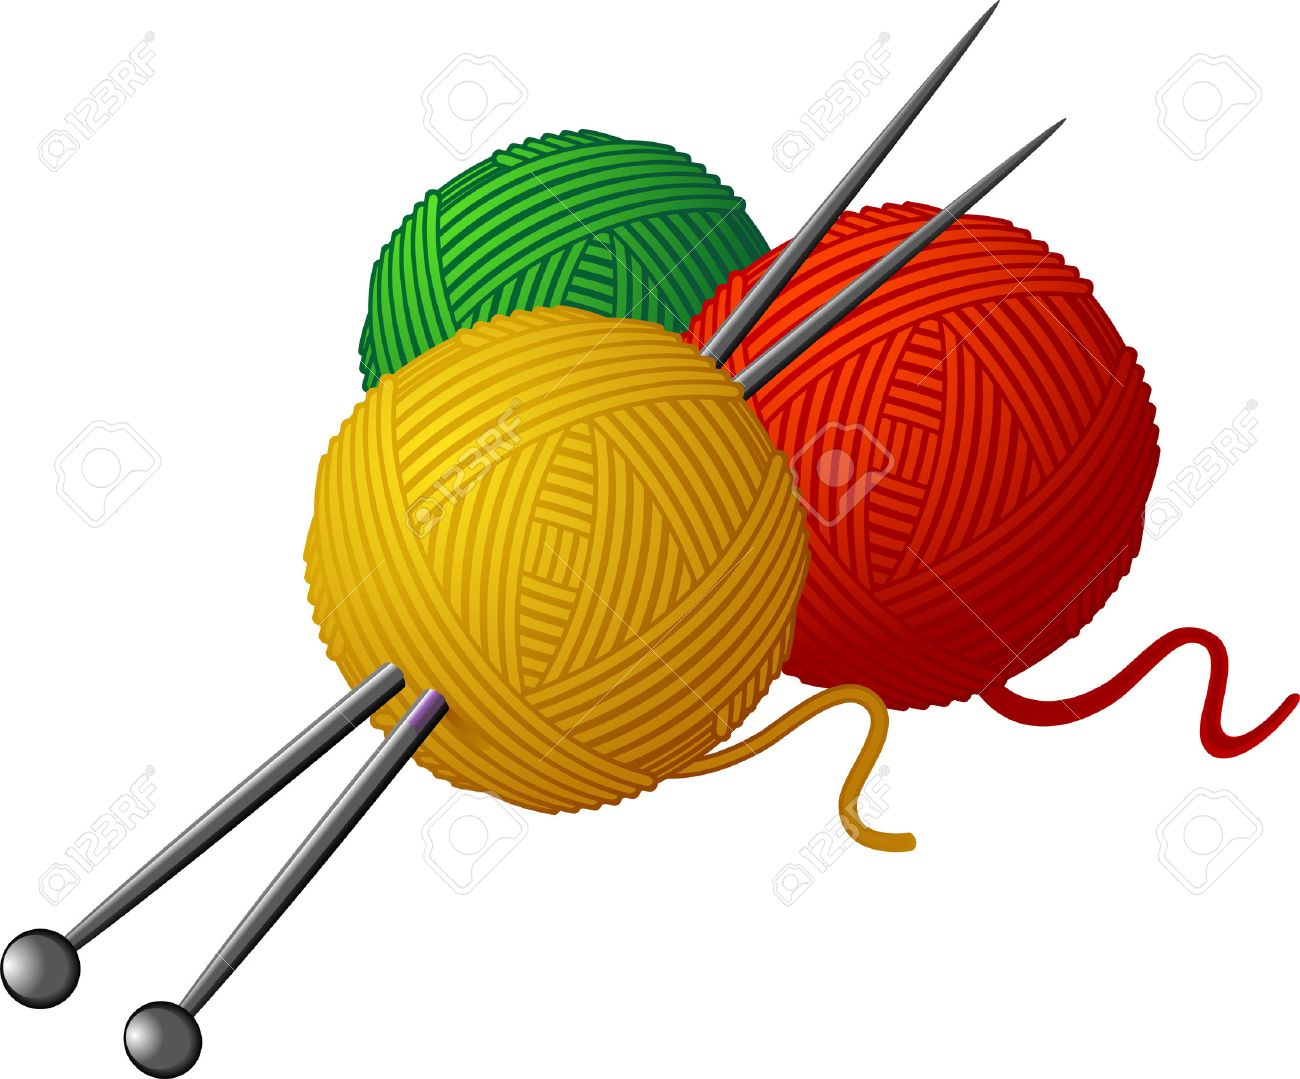 Skeins of wool and knitting needles isolated over white. - 8153716